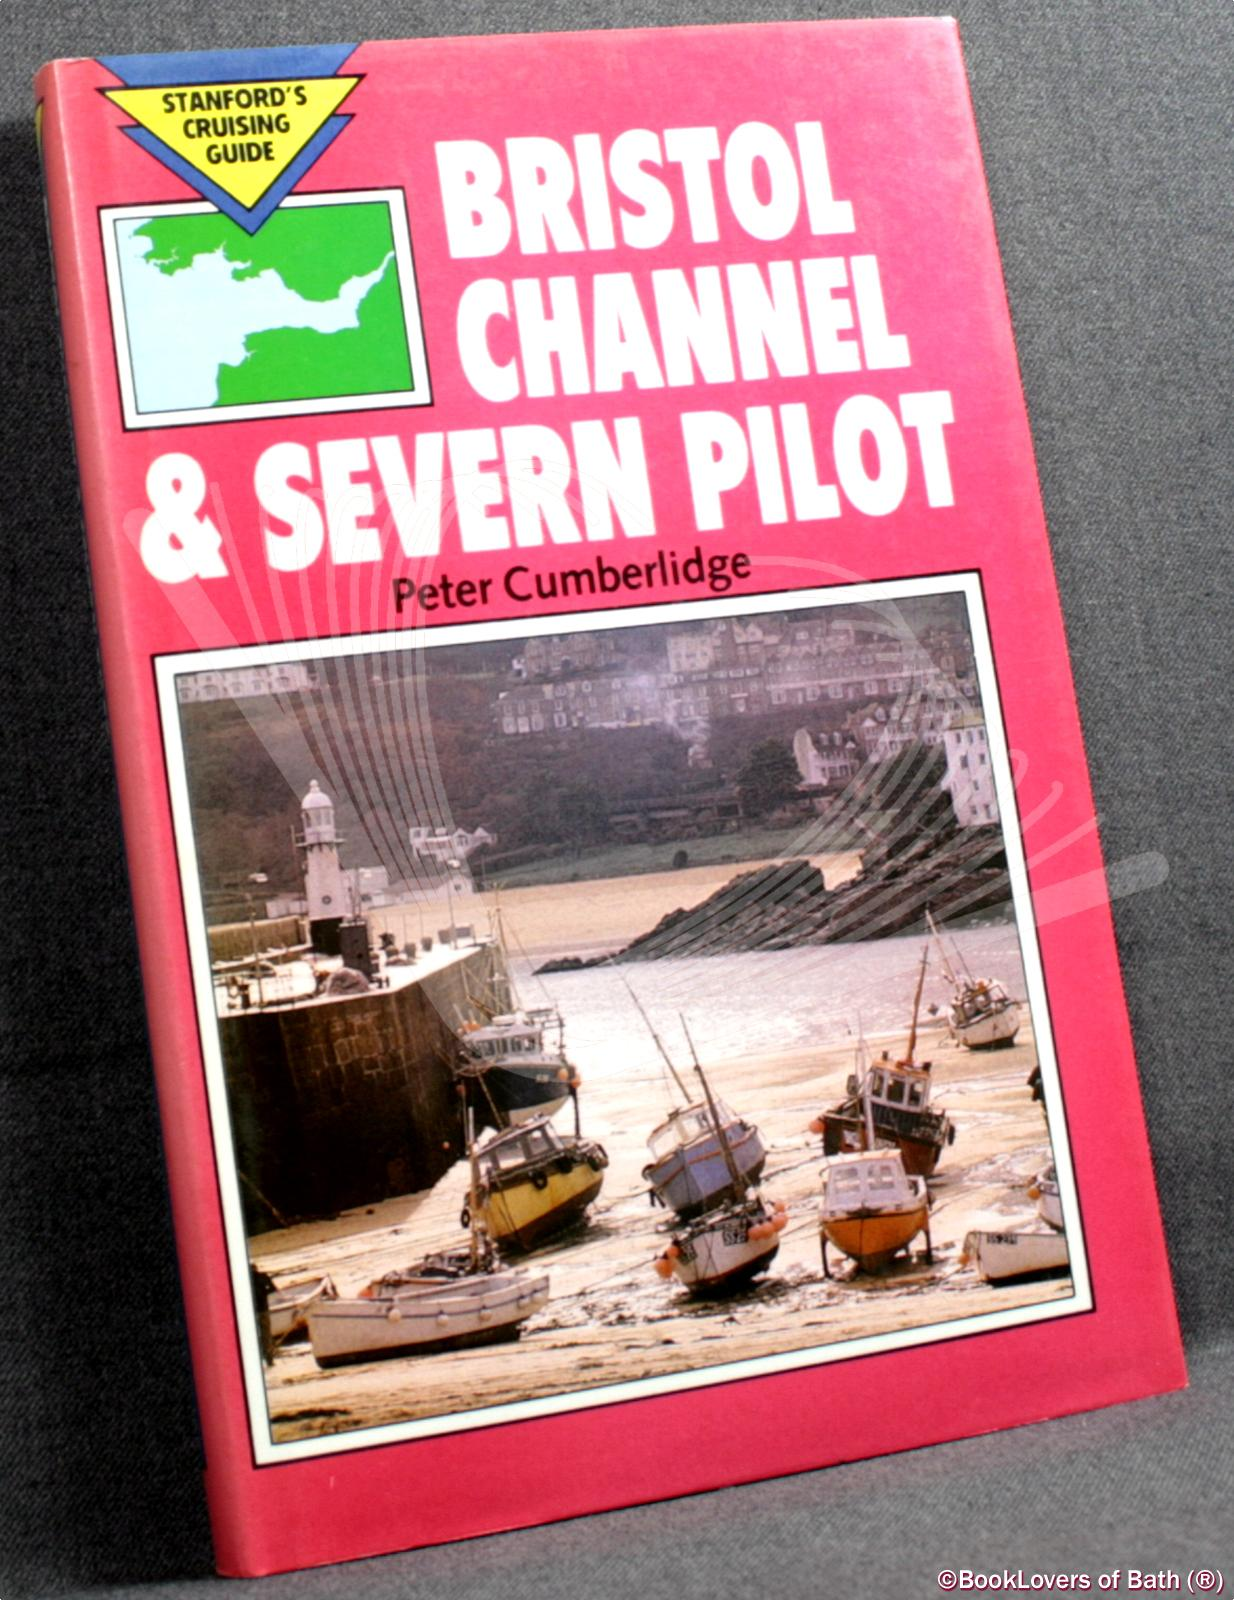 Bristol Channel and Severn Pilot - Peter Cumberlidge